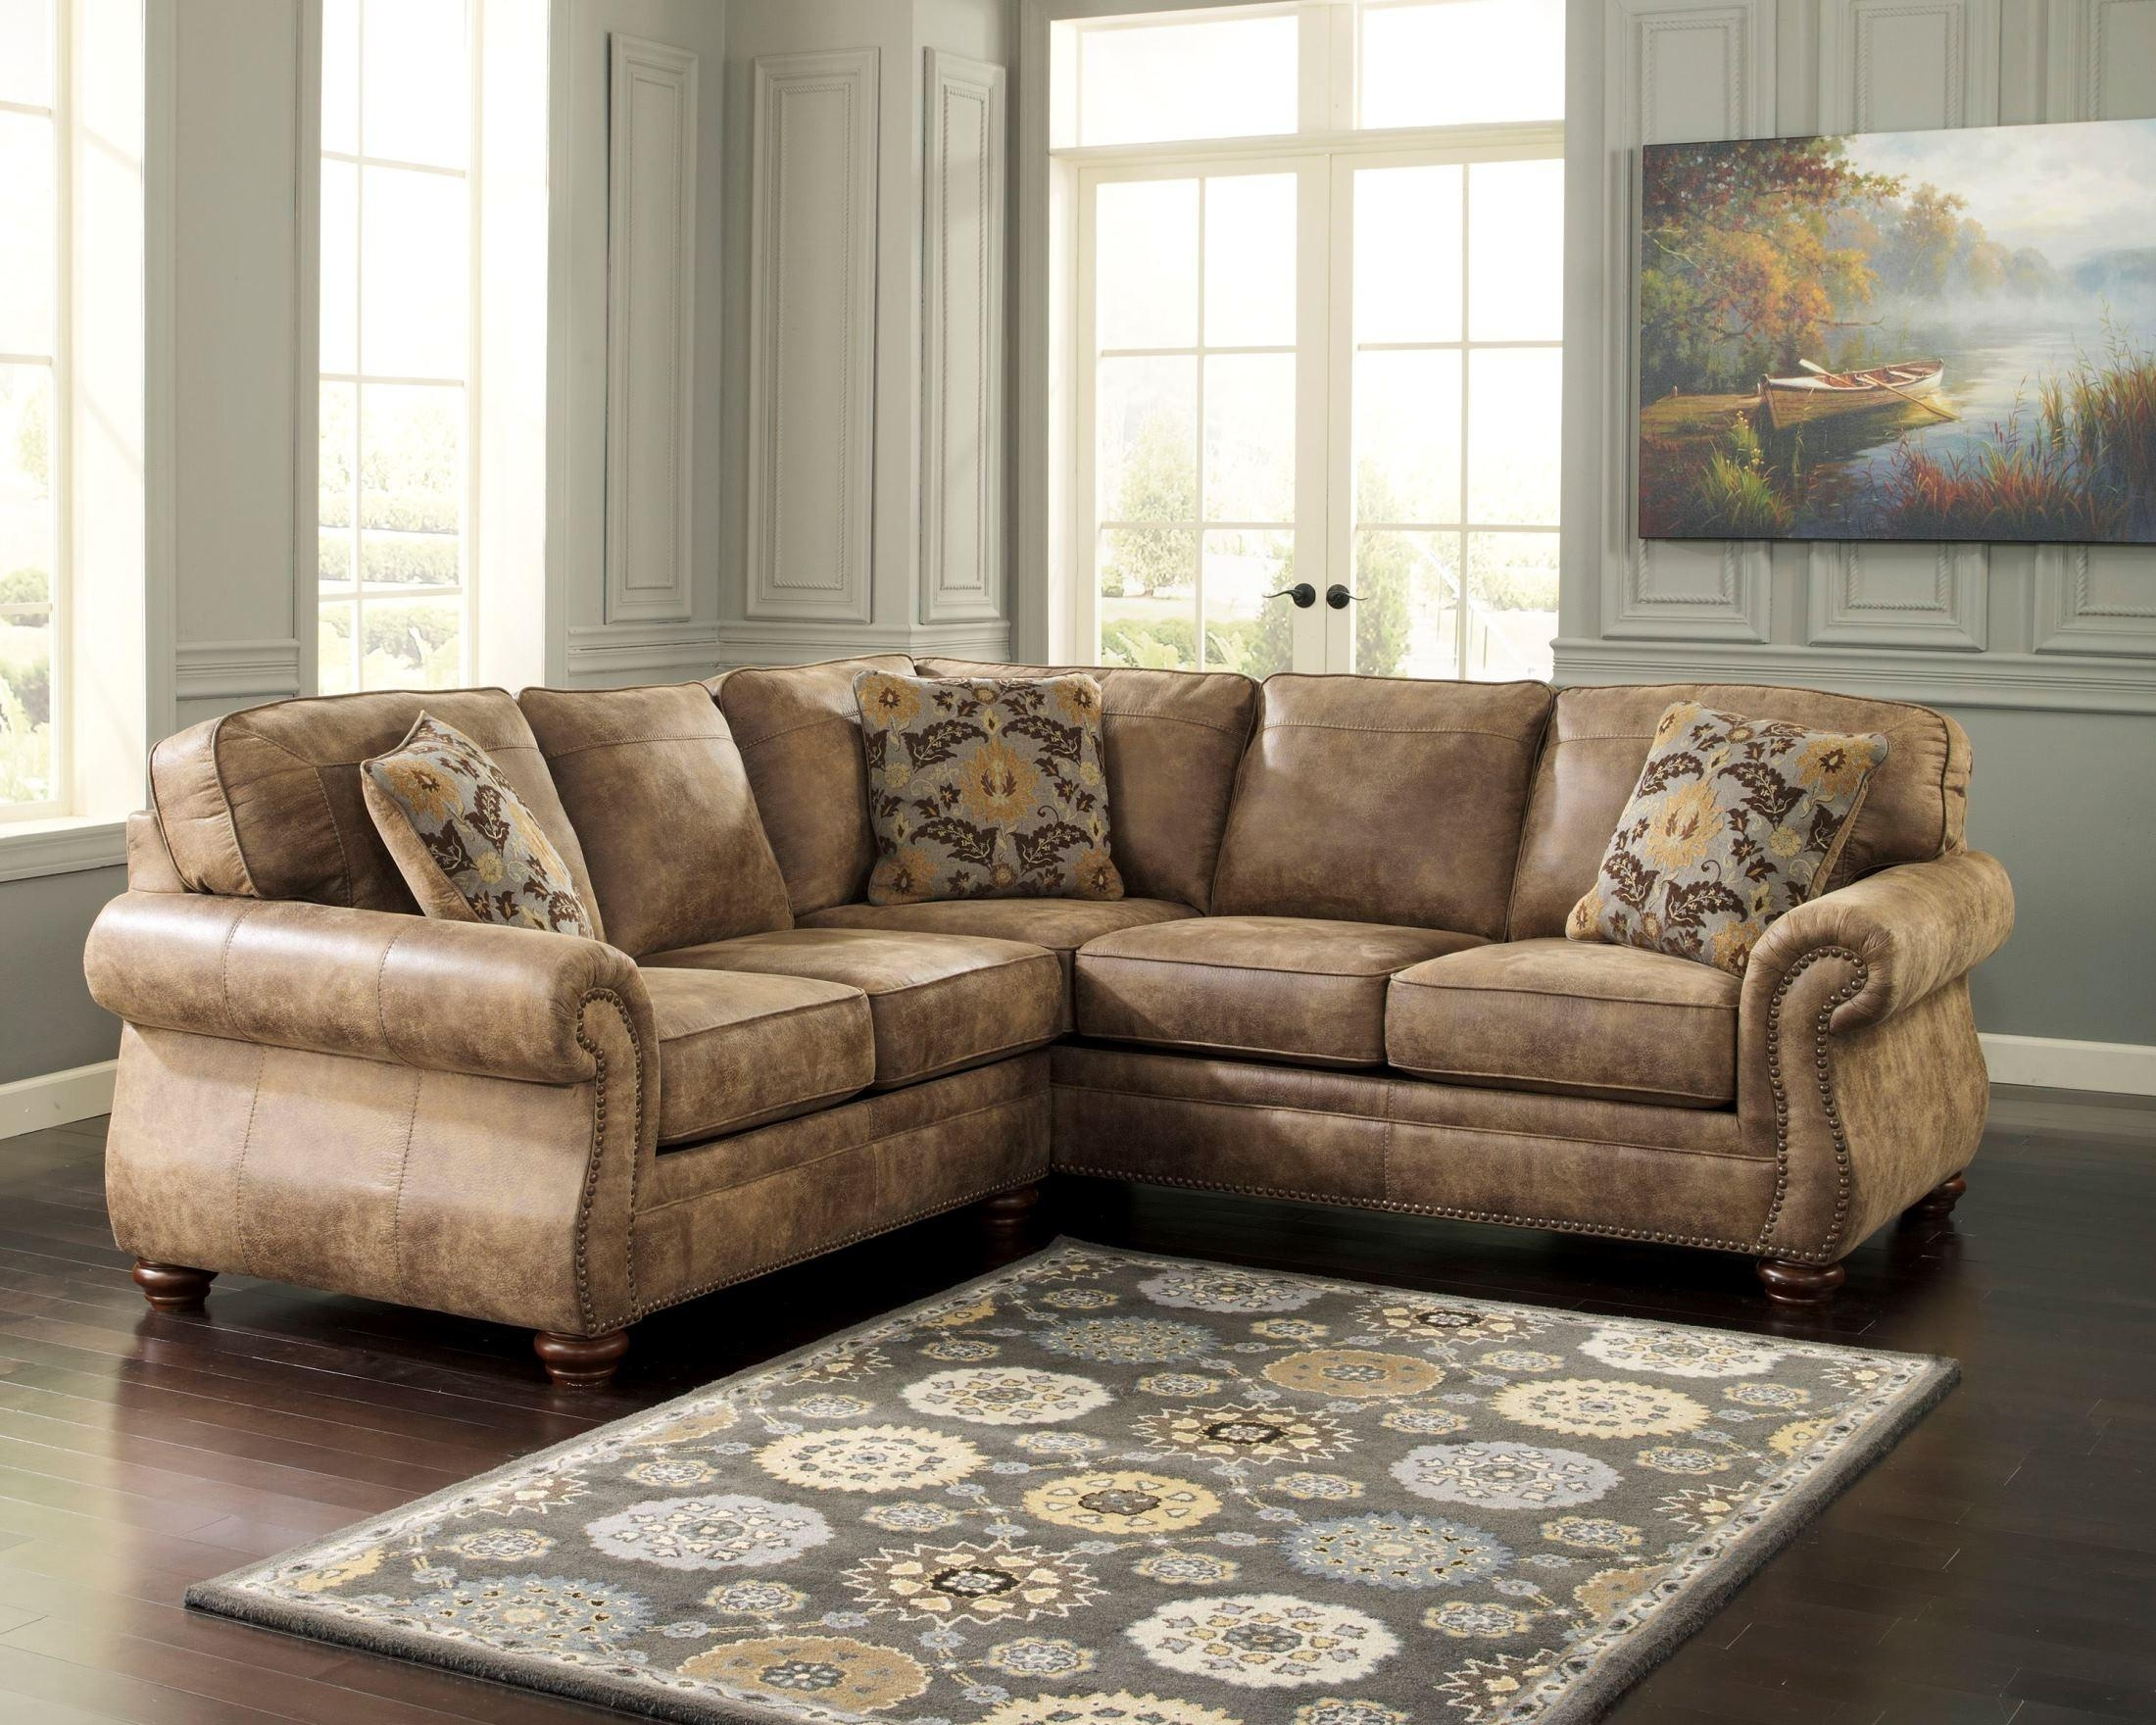 Chenille Sectional. With Chenille Sectional (Image 4 of 20)